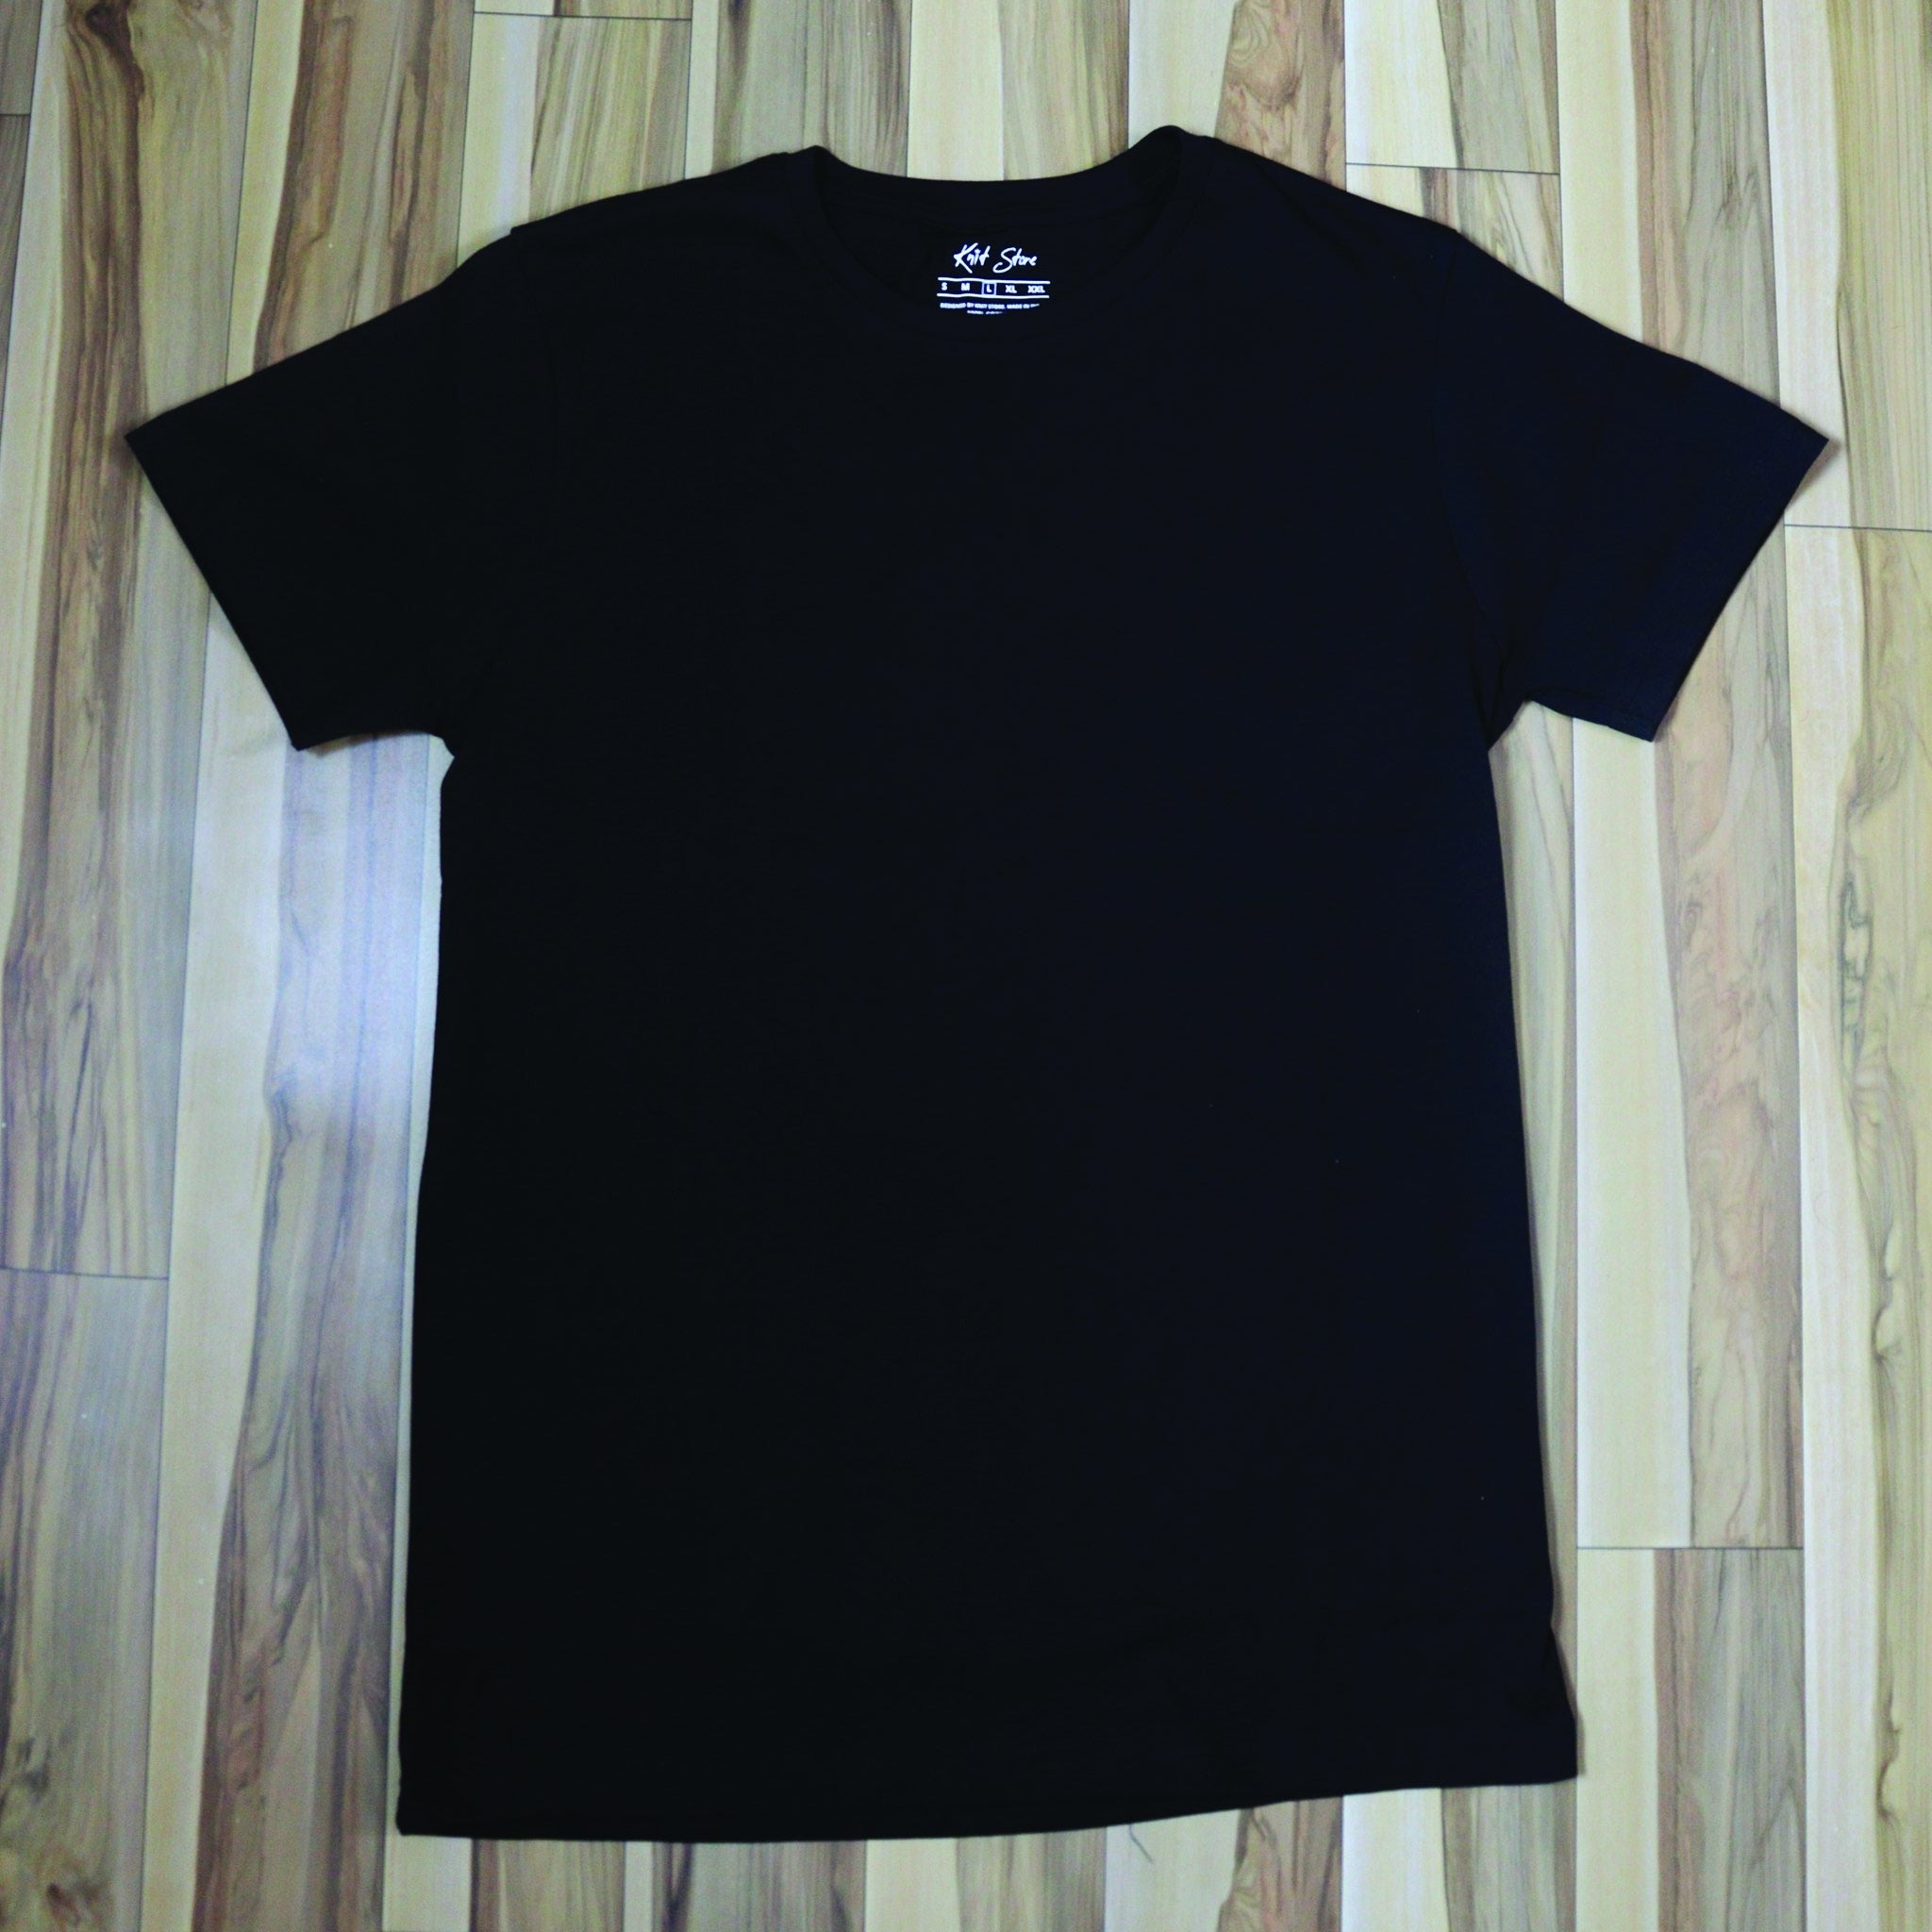 Black Short Sleeve Solid Round Neck T-Shirt